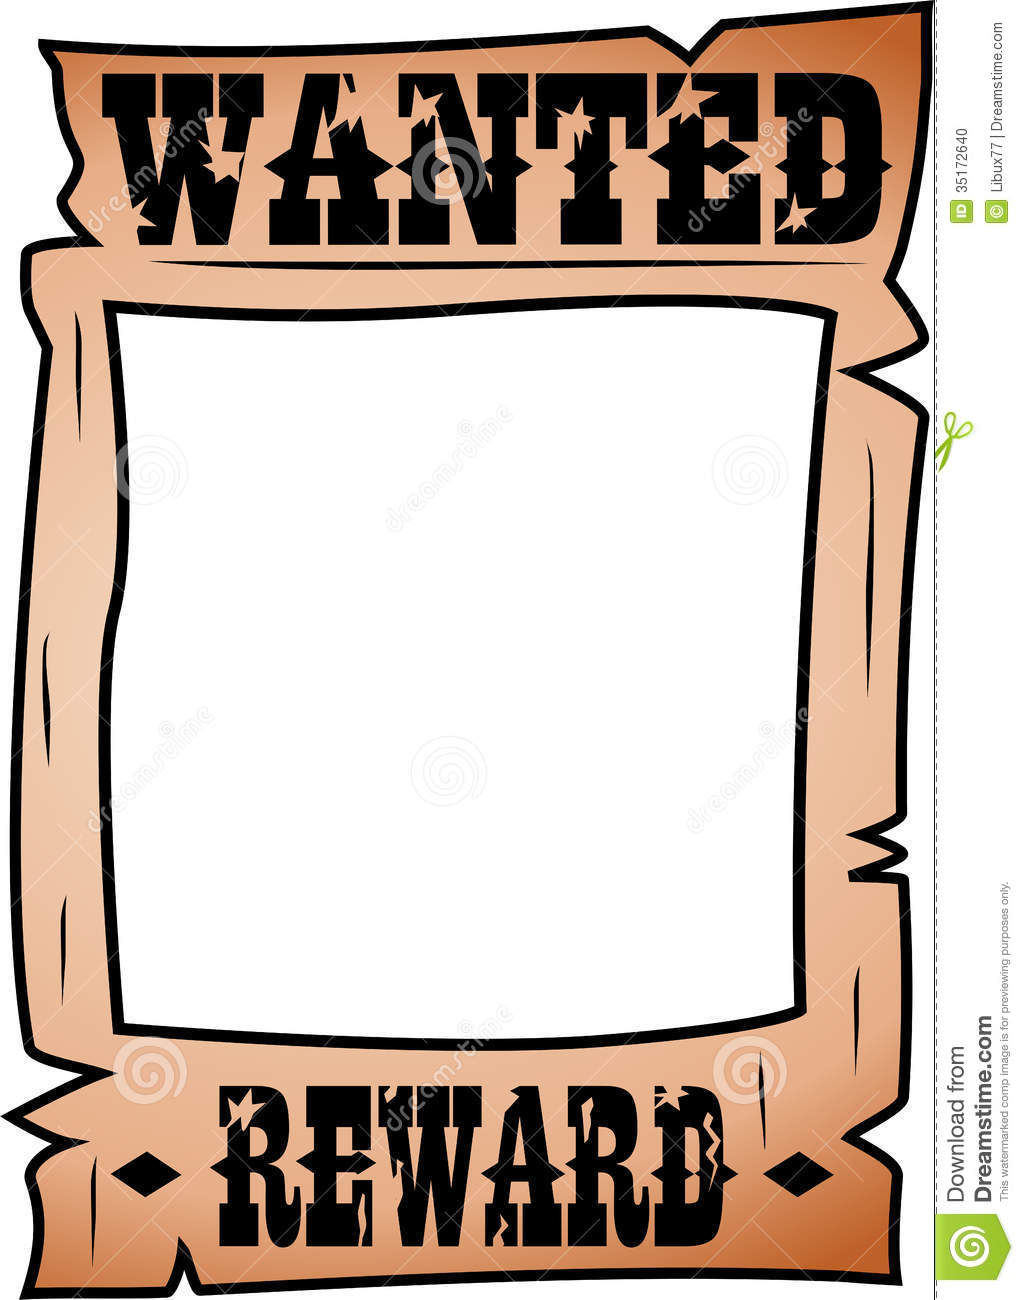 Blank Wanted Template Cartoon Wanted Poster Whitespace Rectangular Face  Isolated White Background Eps File Available 35172640